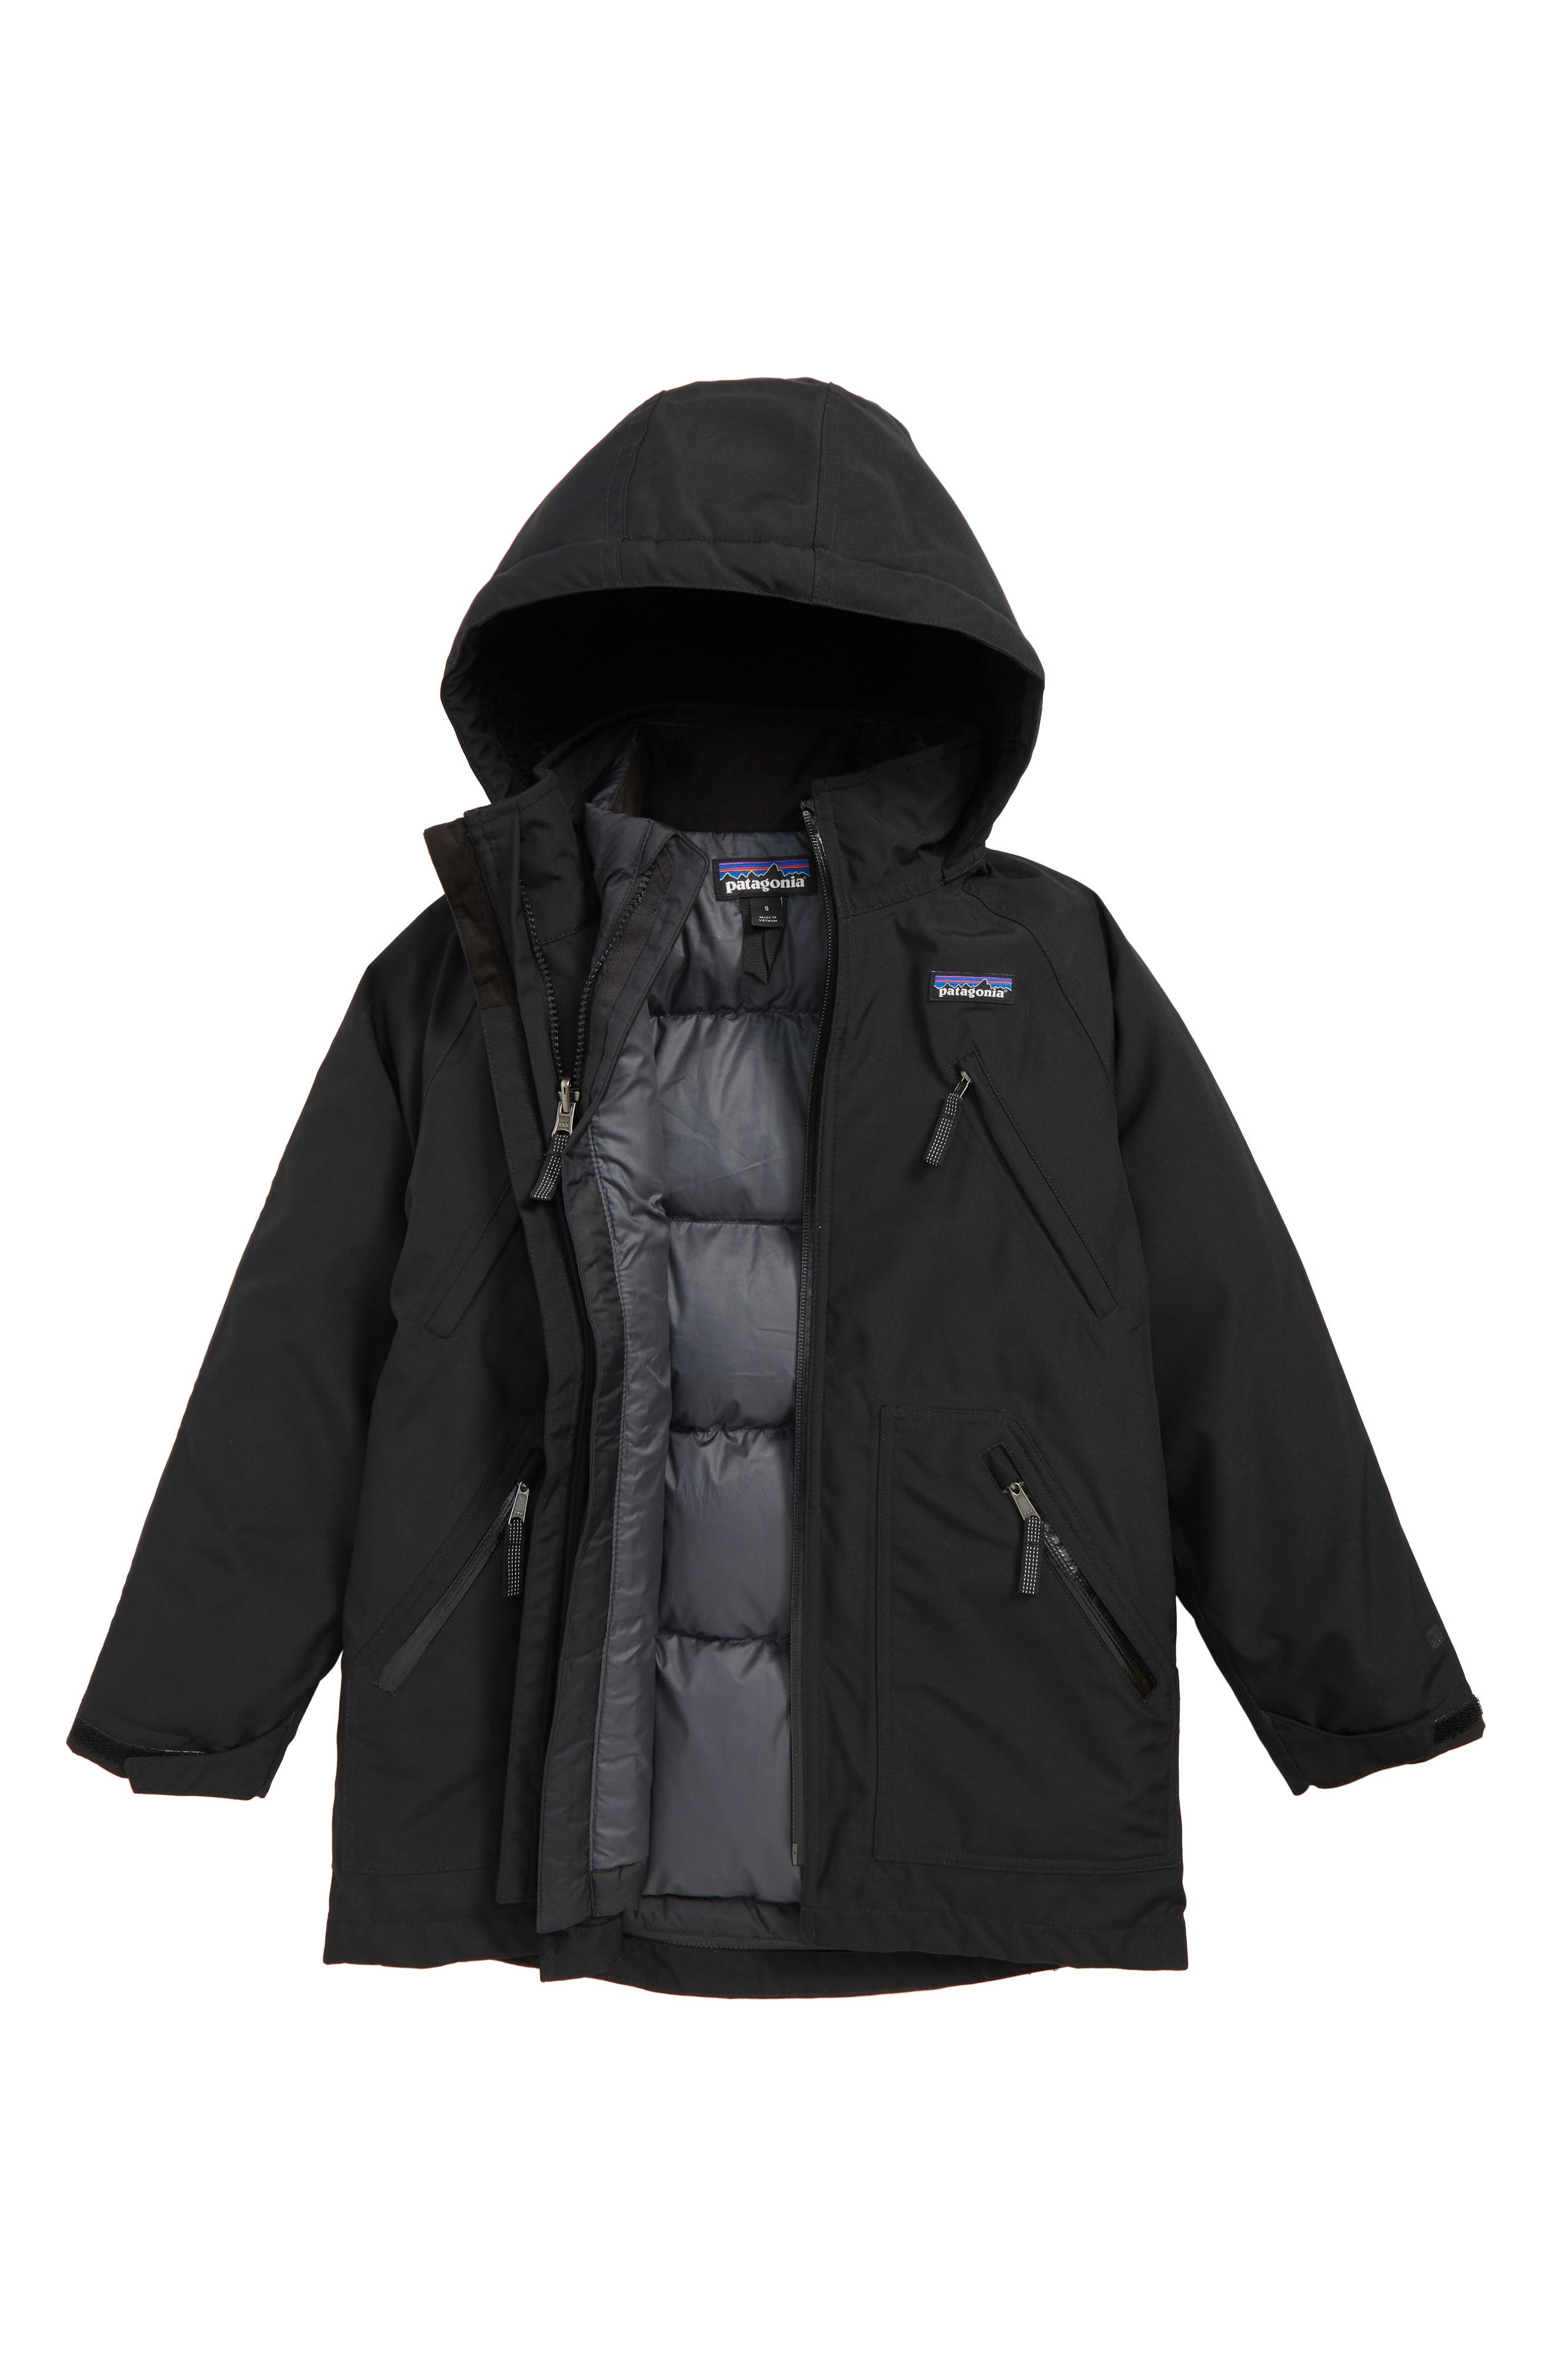 PATAGONIA, Tres Water Repellent 3-in-1 Recycled Down Parka, Main thumbnail 1, color, 001